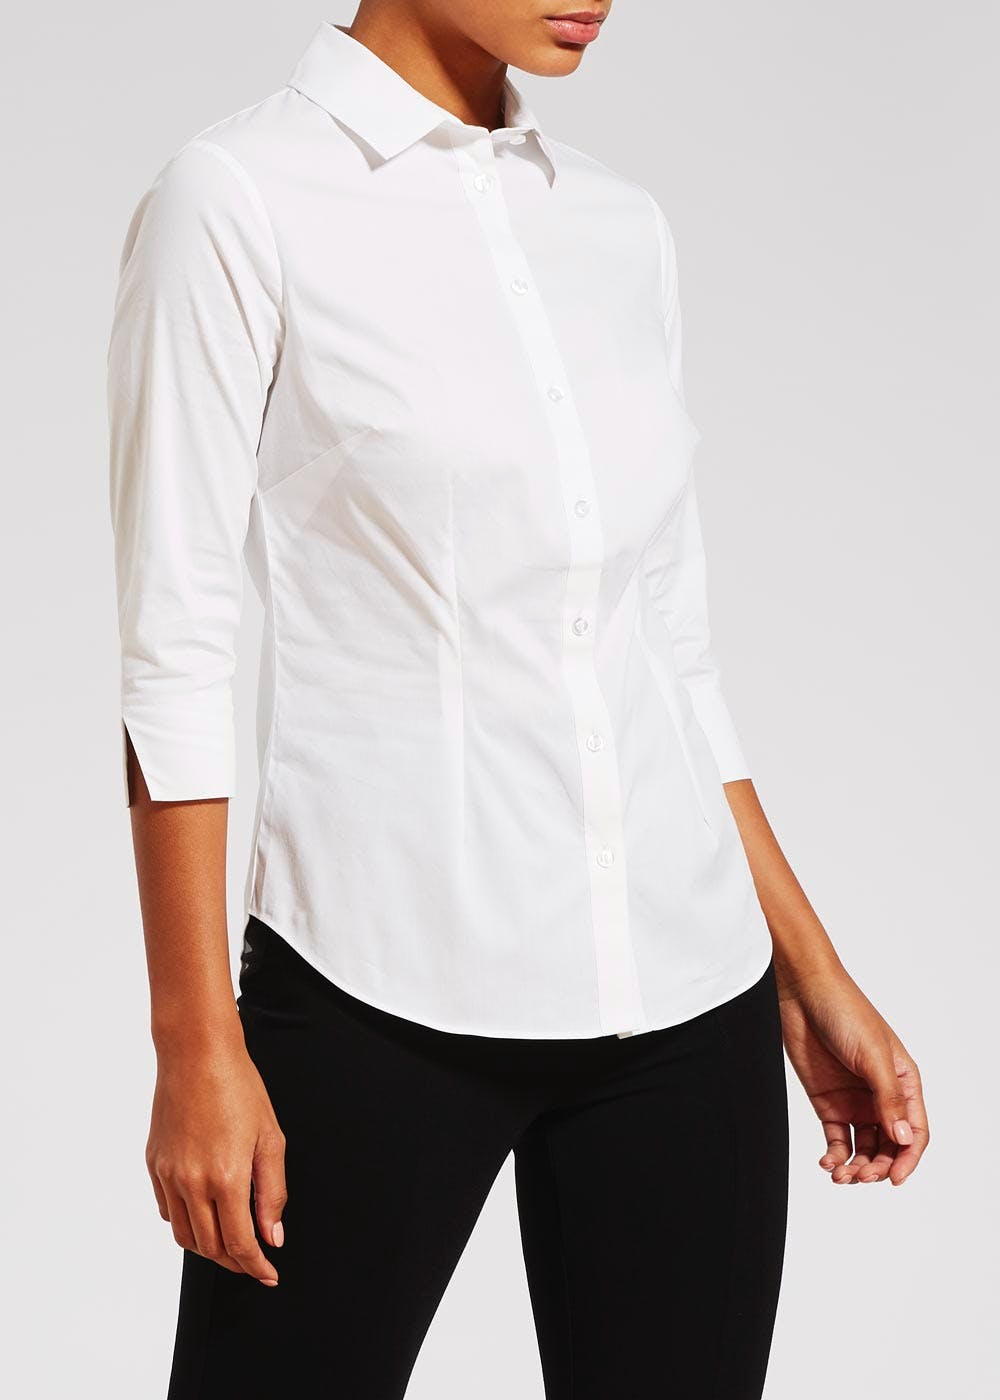 White 3/4 Sleeve Fitted Shirt – White